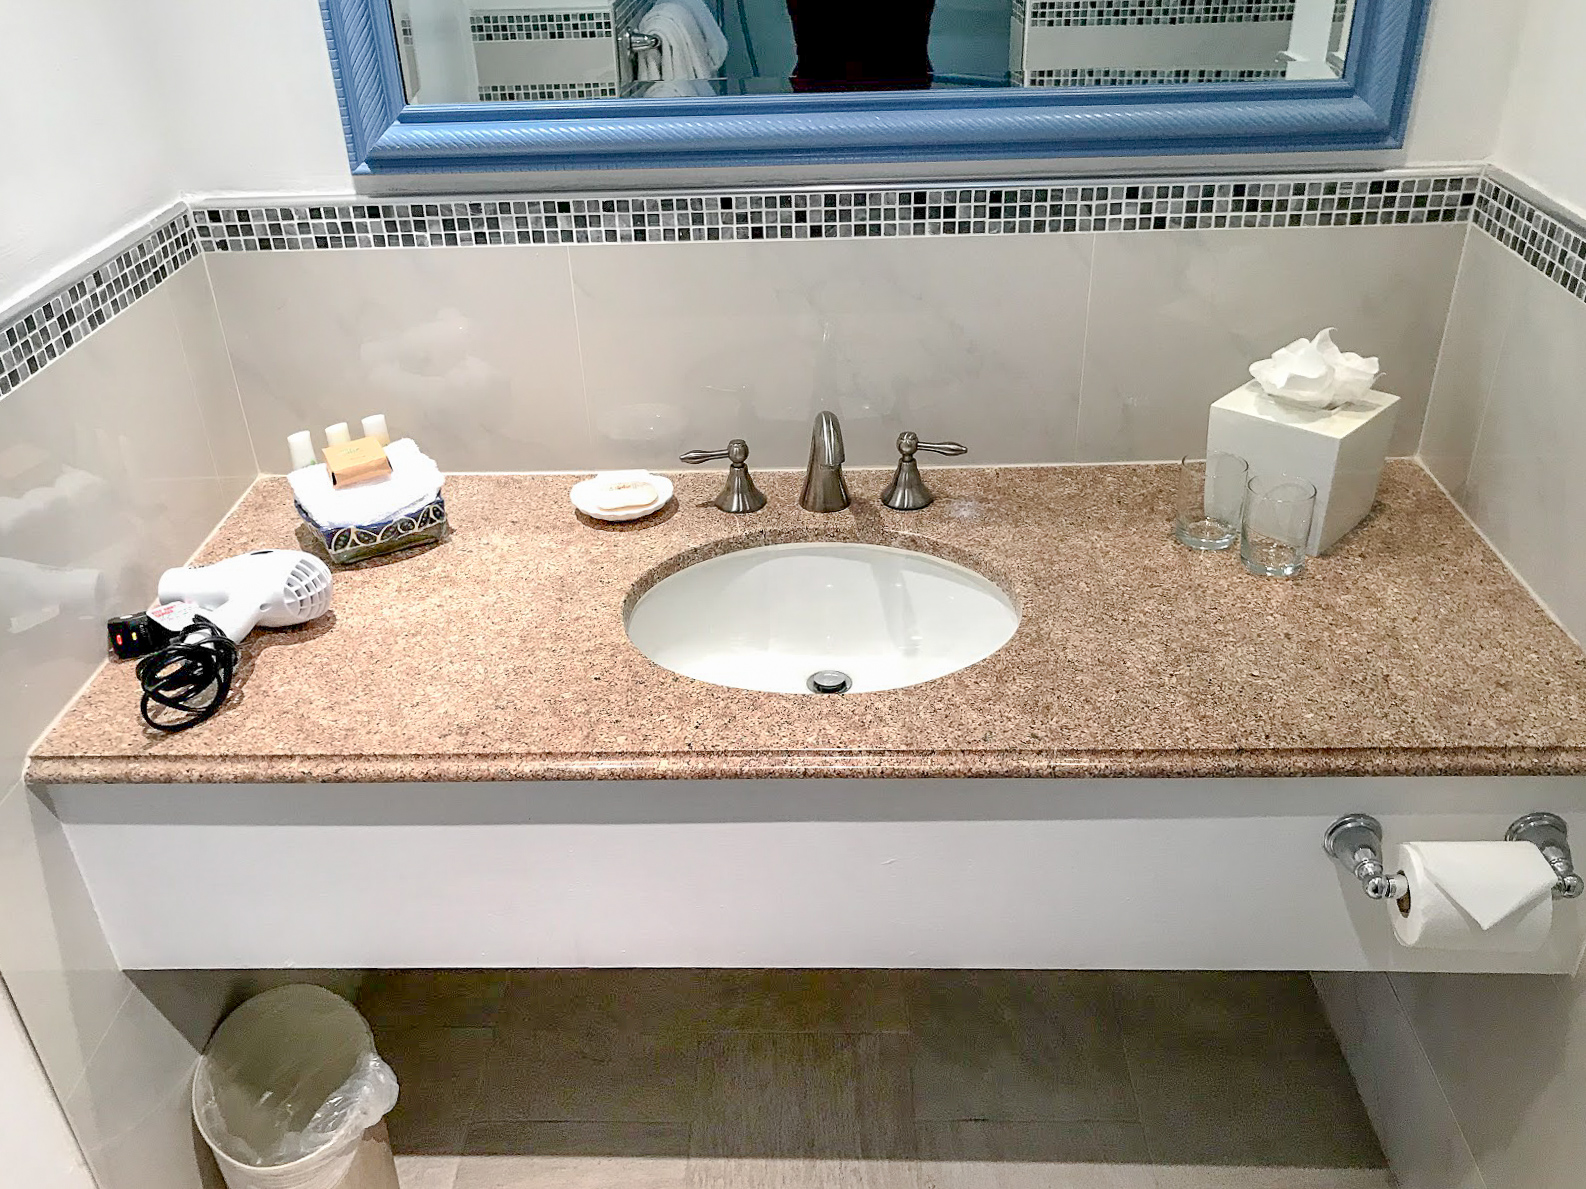 The Club Barbados sink and surrounding counter. It is a warm marble colour